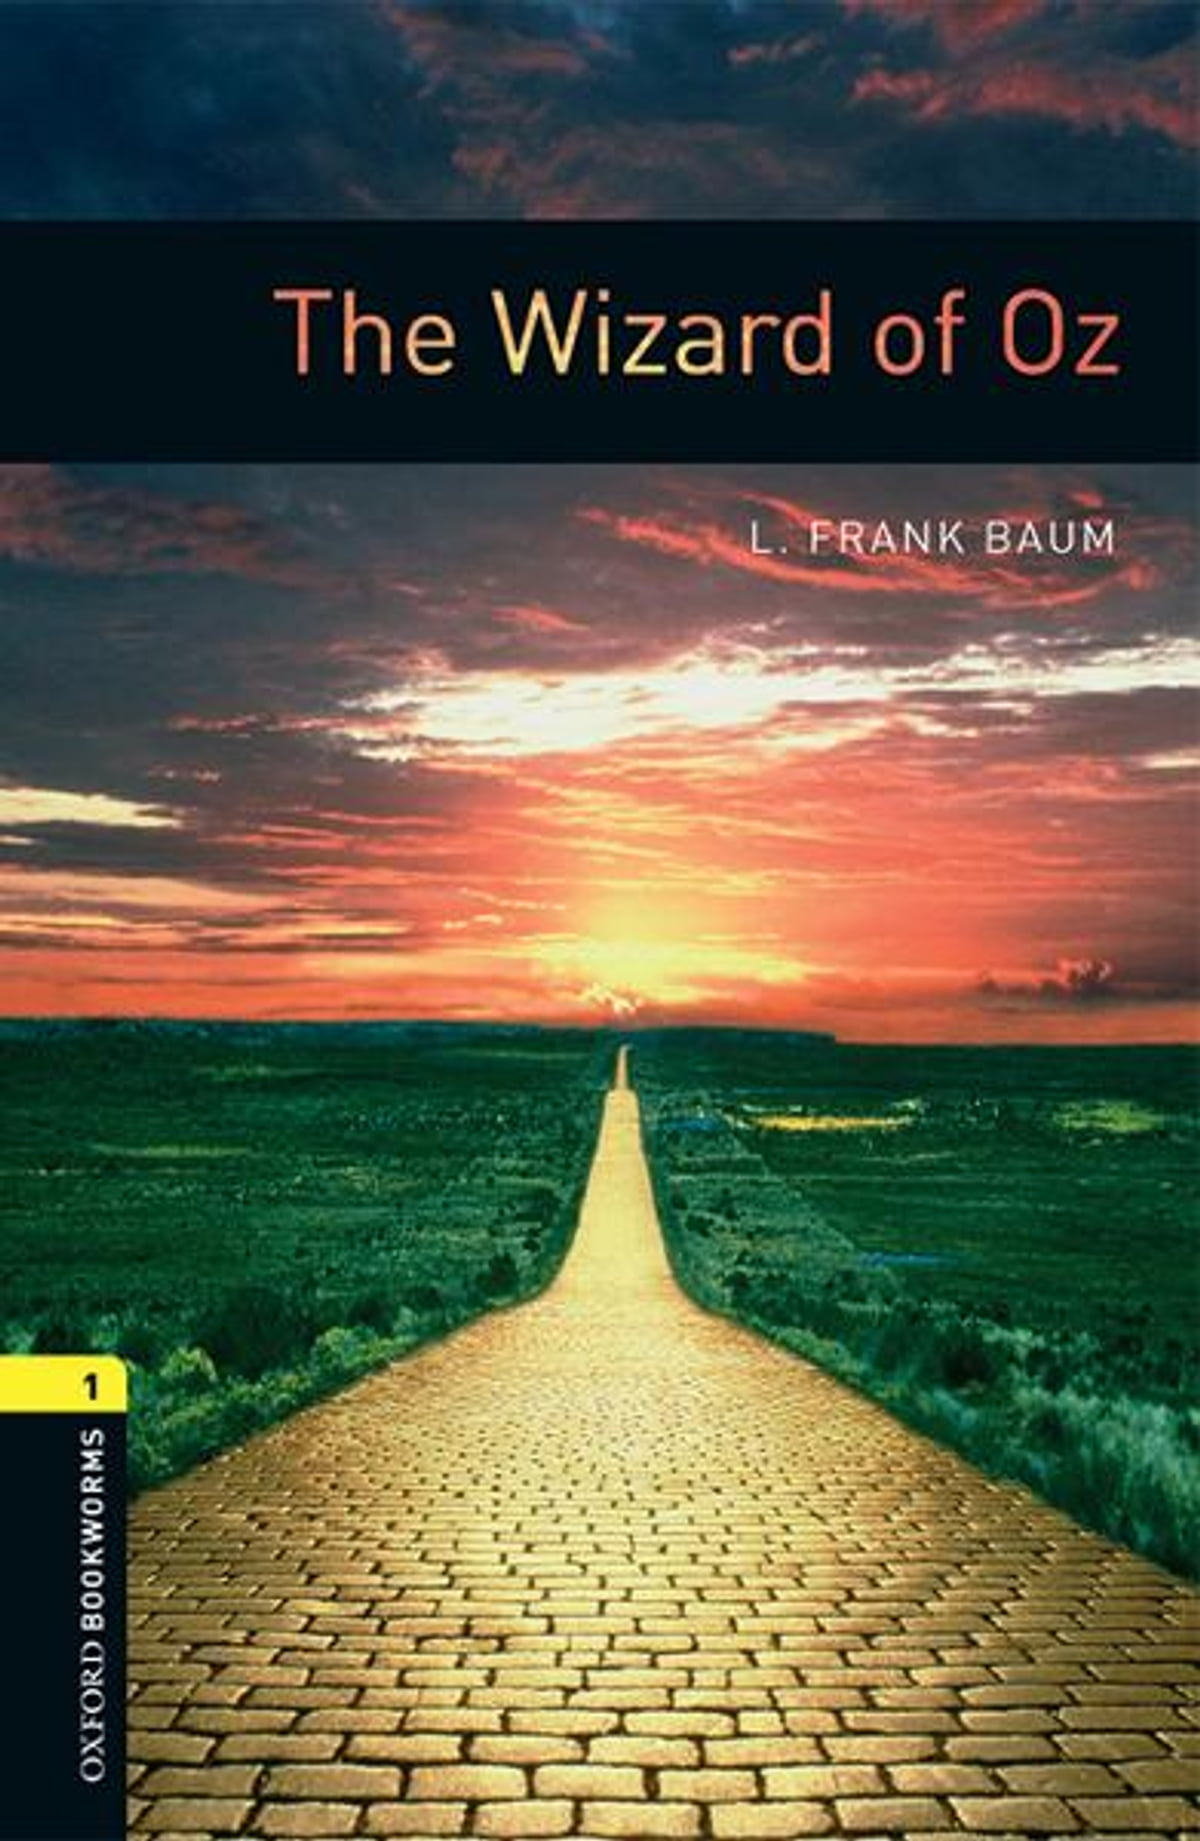 Oxford Bookworms Library The Wizard Of Oz Level 1 Oxford Bookworms Library Ebook By